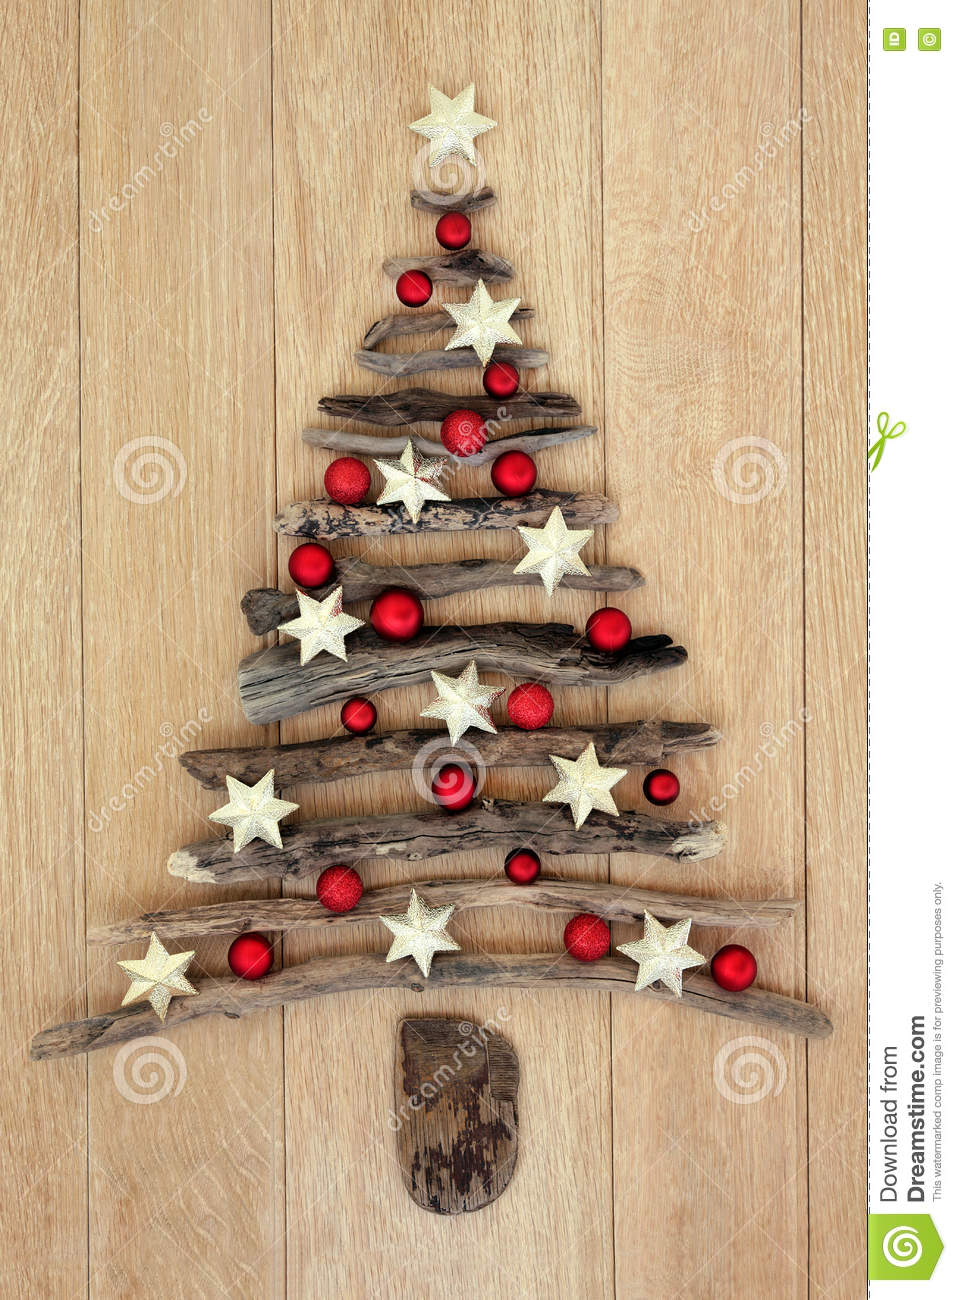 Driftwood christmas decorations uk for Driftwood decor and design